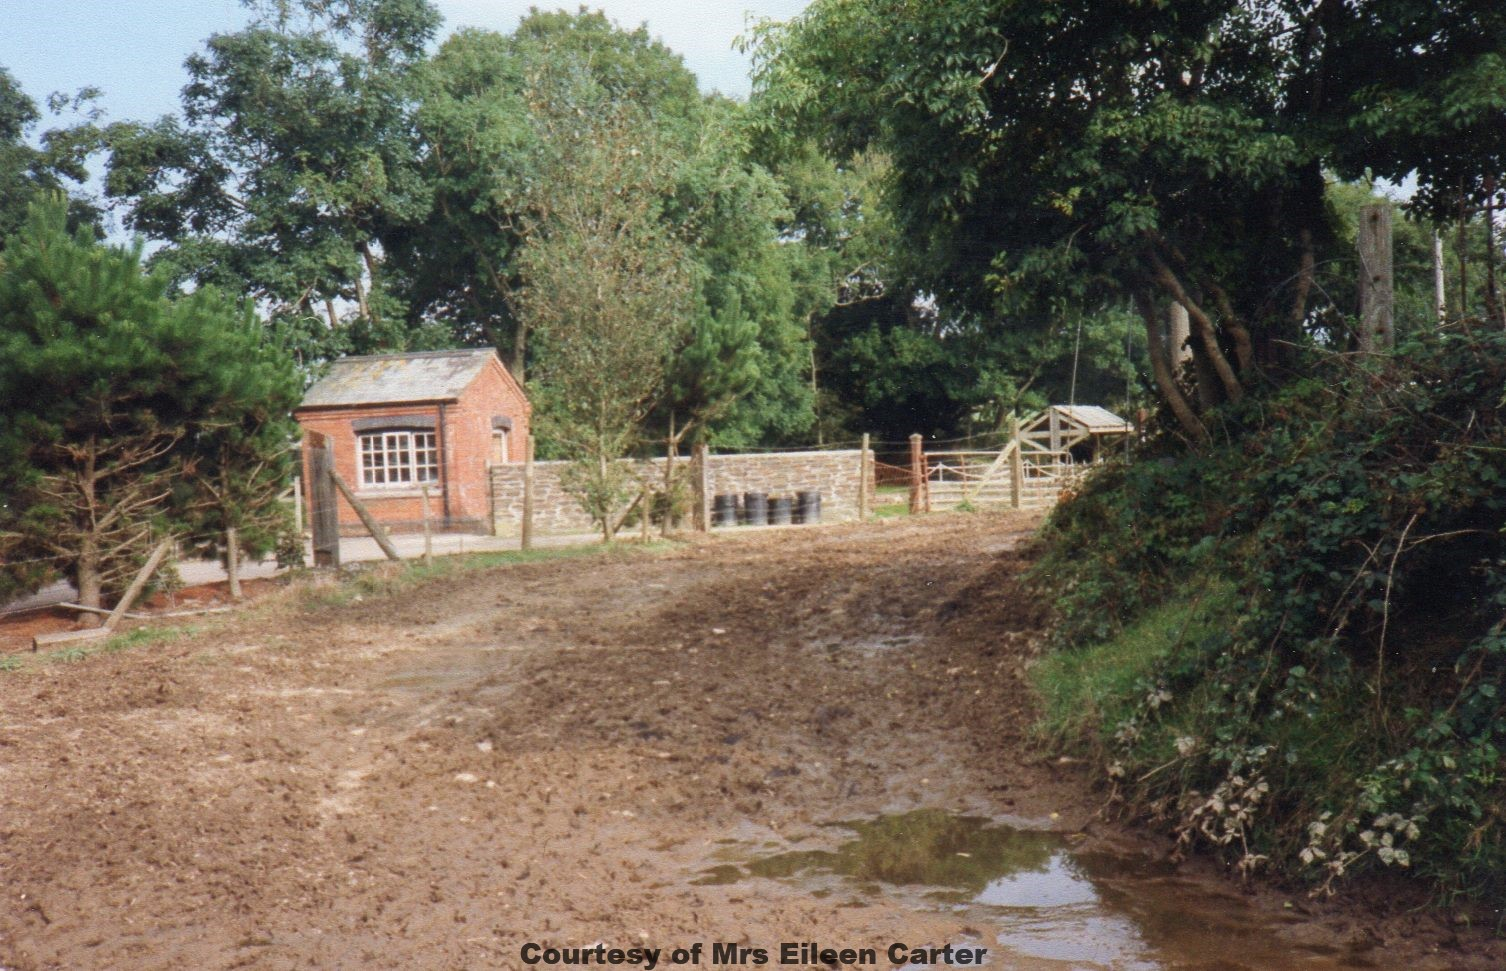 The old Weighbridge at Shepherds